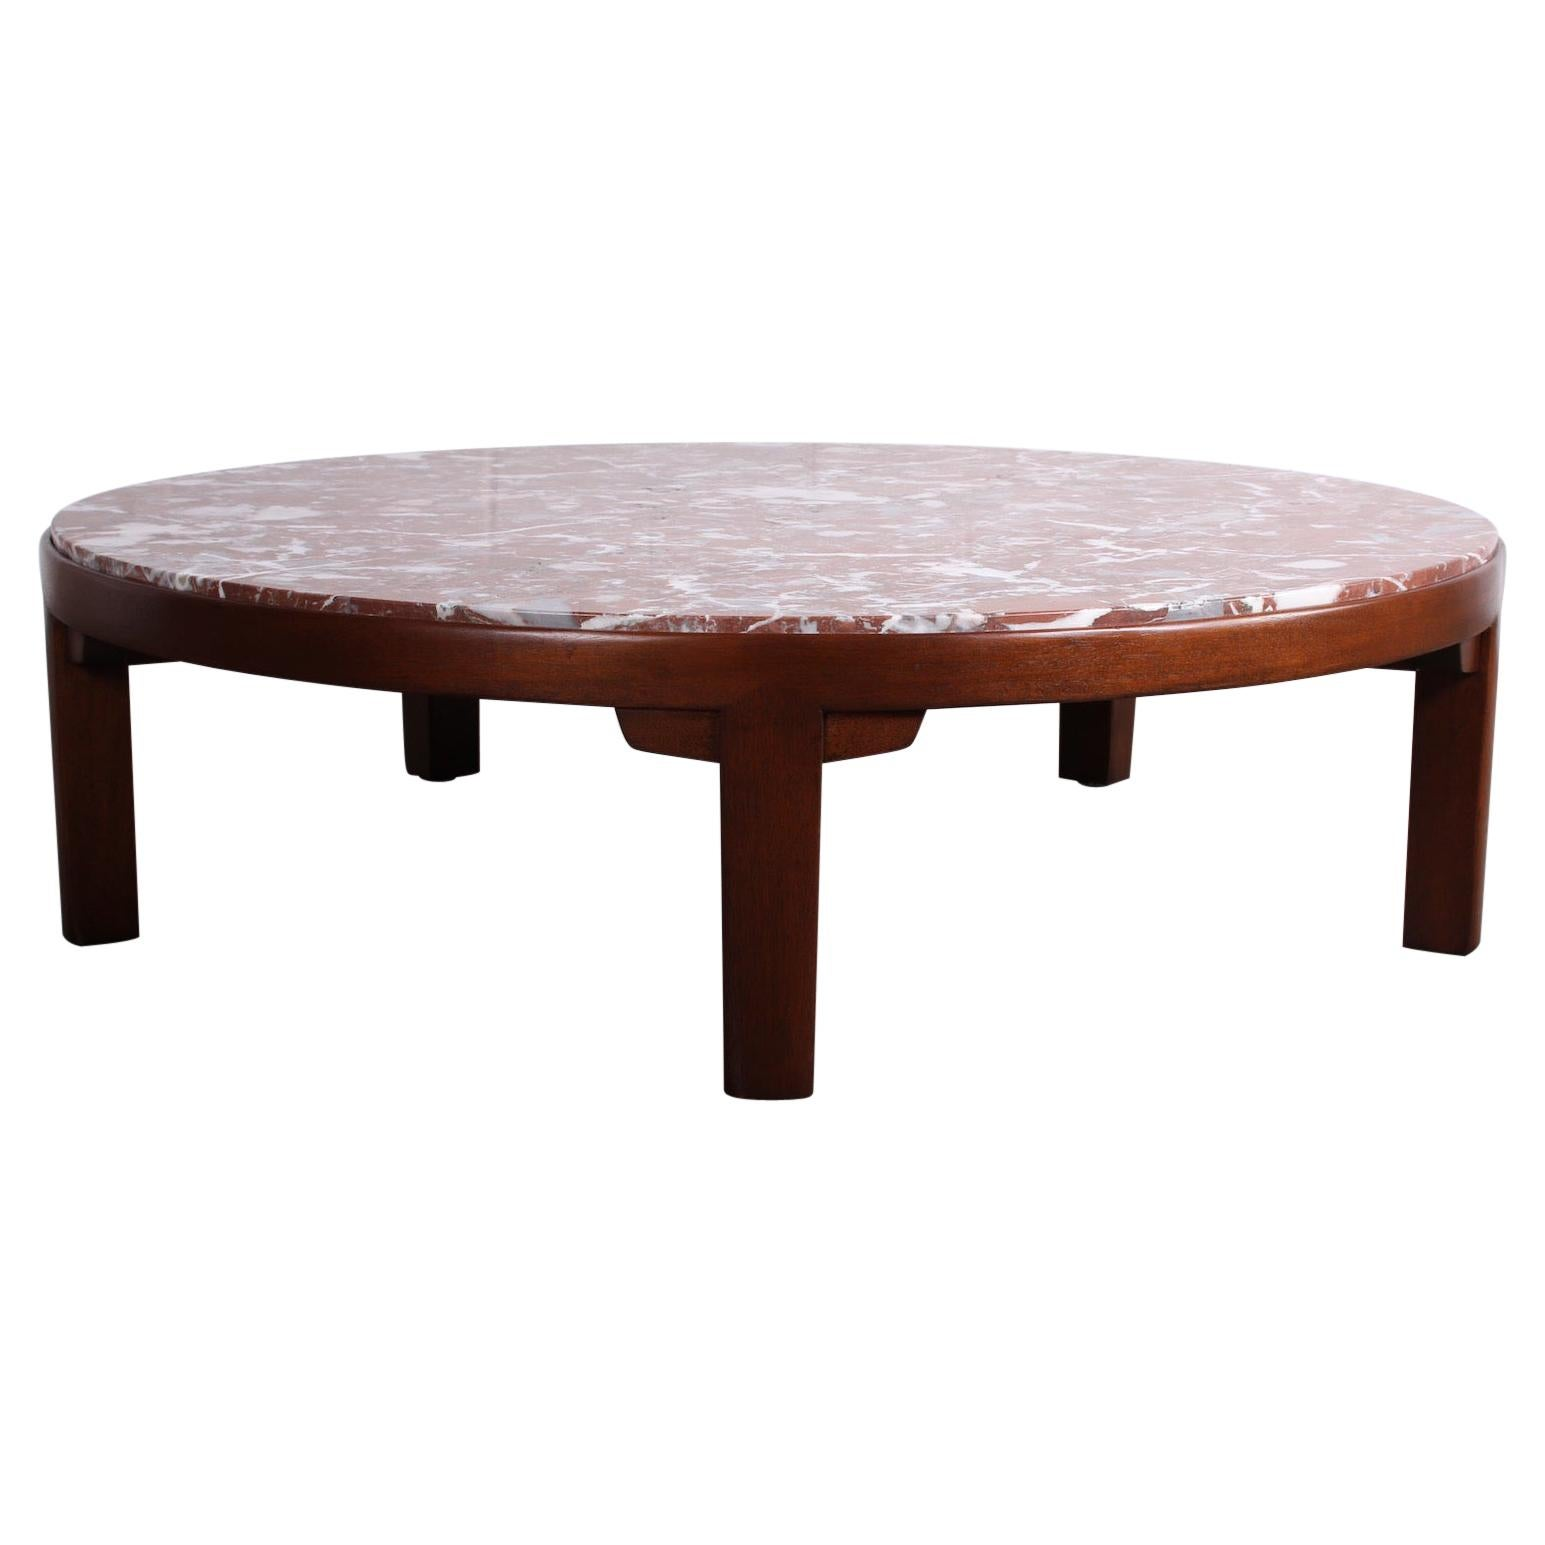 Edward Wormley for Dunbar Mahogany Coffee Table with Marble Top